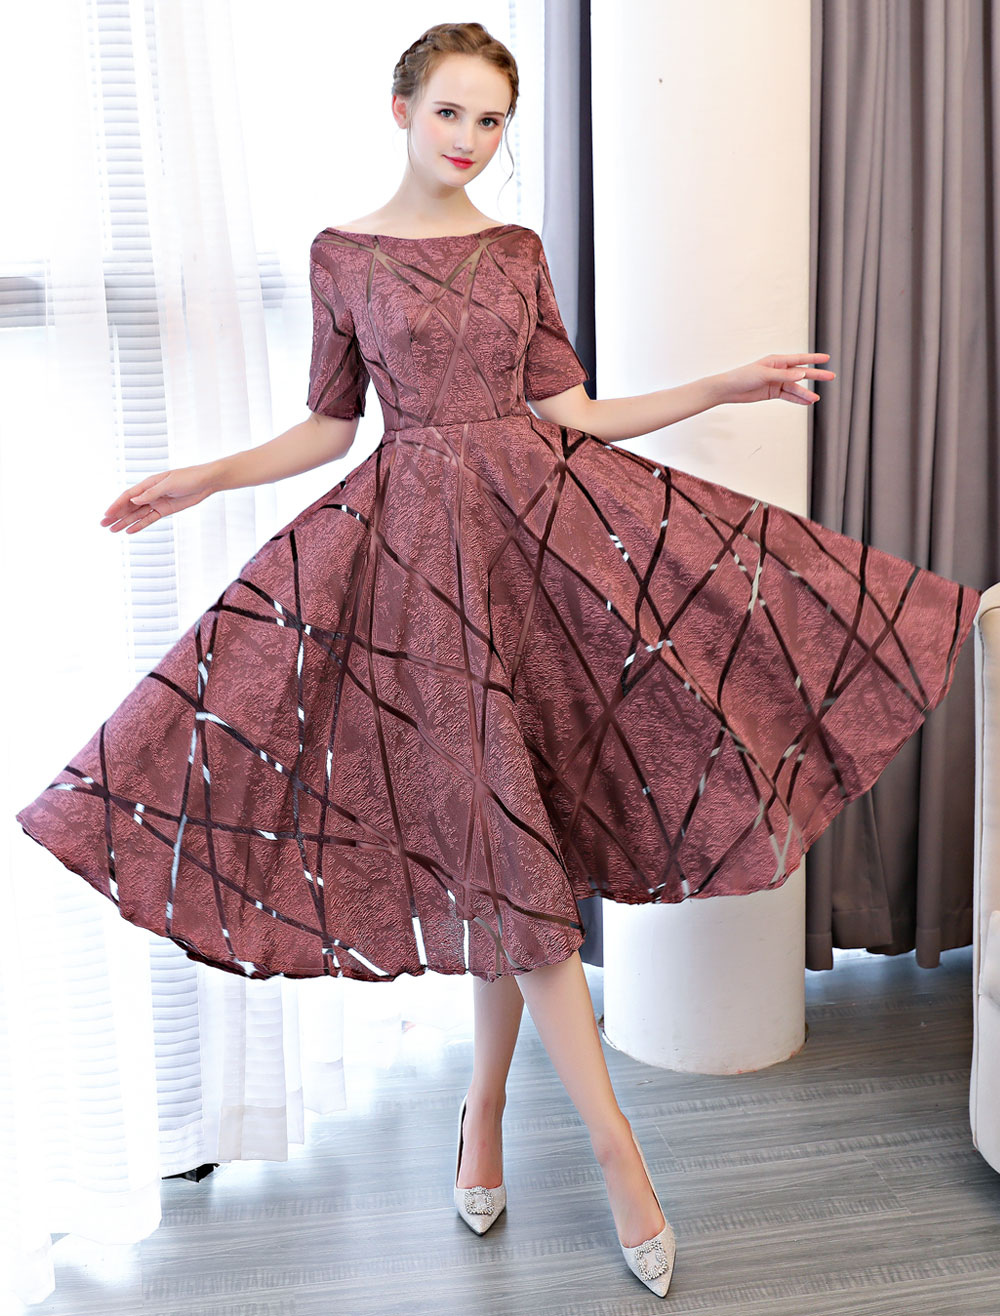 Short Prom Dresses Cameo Pink Half Sleeve Tea Length Cocktail Party Dresses